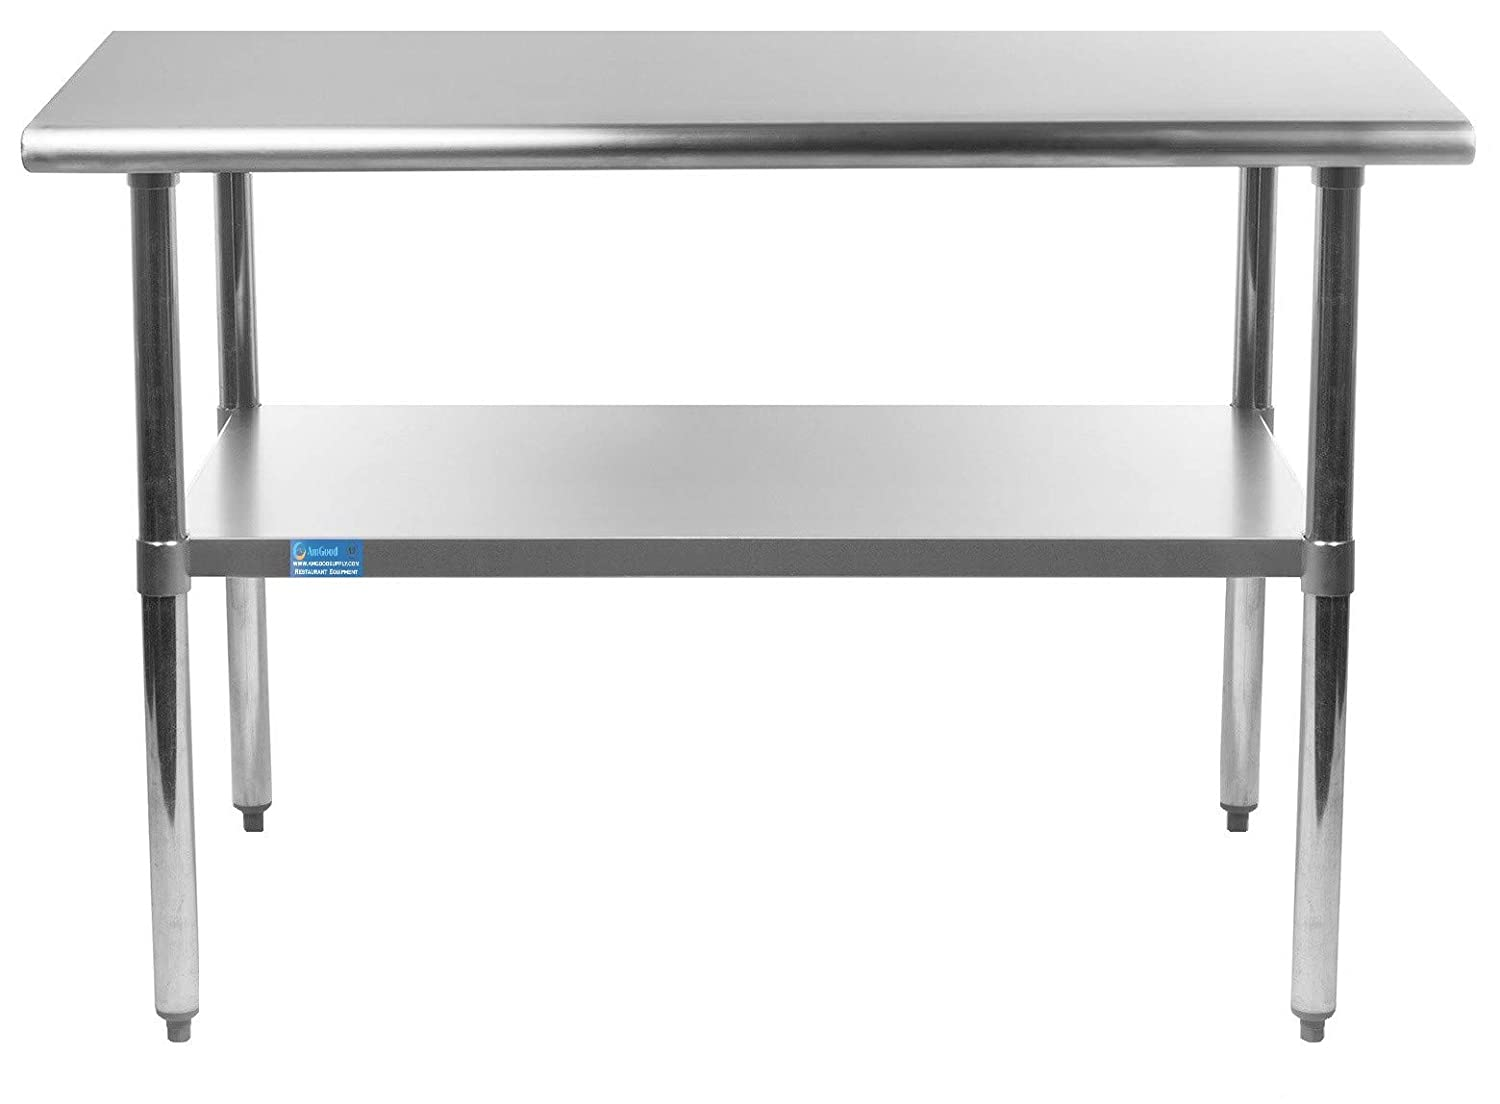 AmGood 18 X 30 Stainless Steel Work Table with Under Shelf | NSF Kitchen Island Food Prep | Laundry Garage Utility Bench